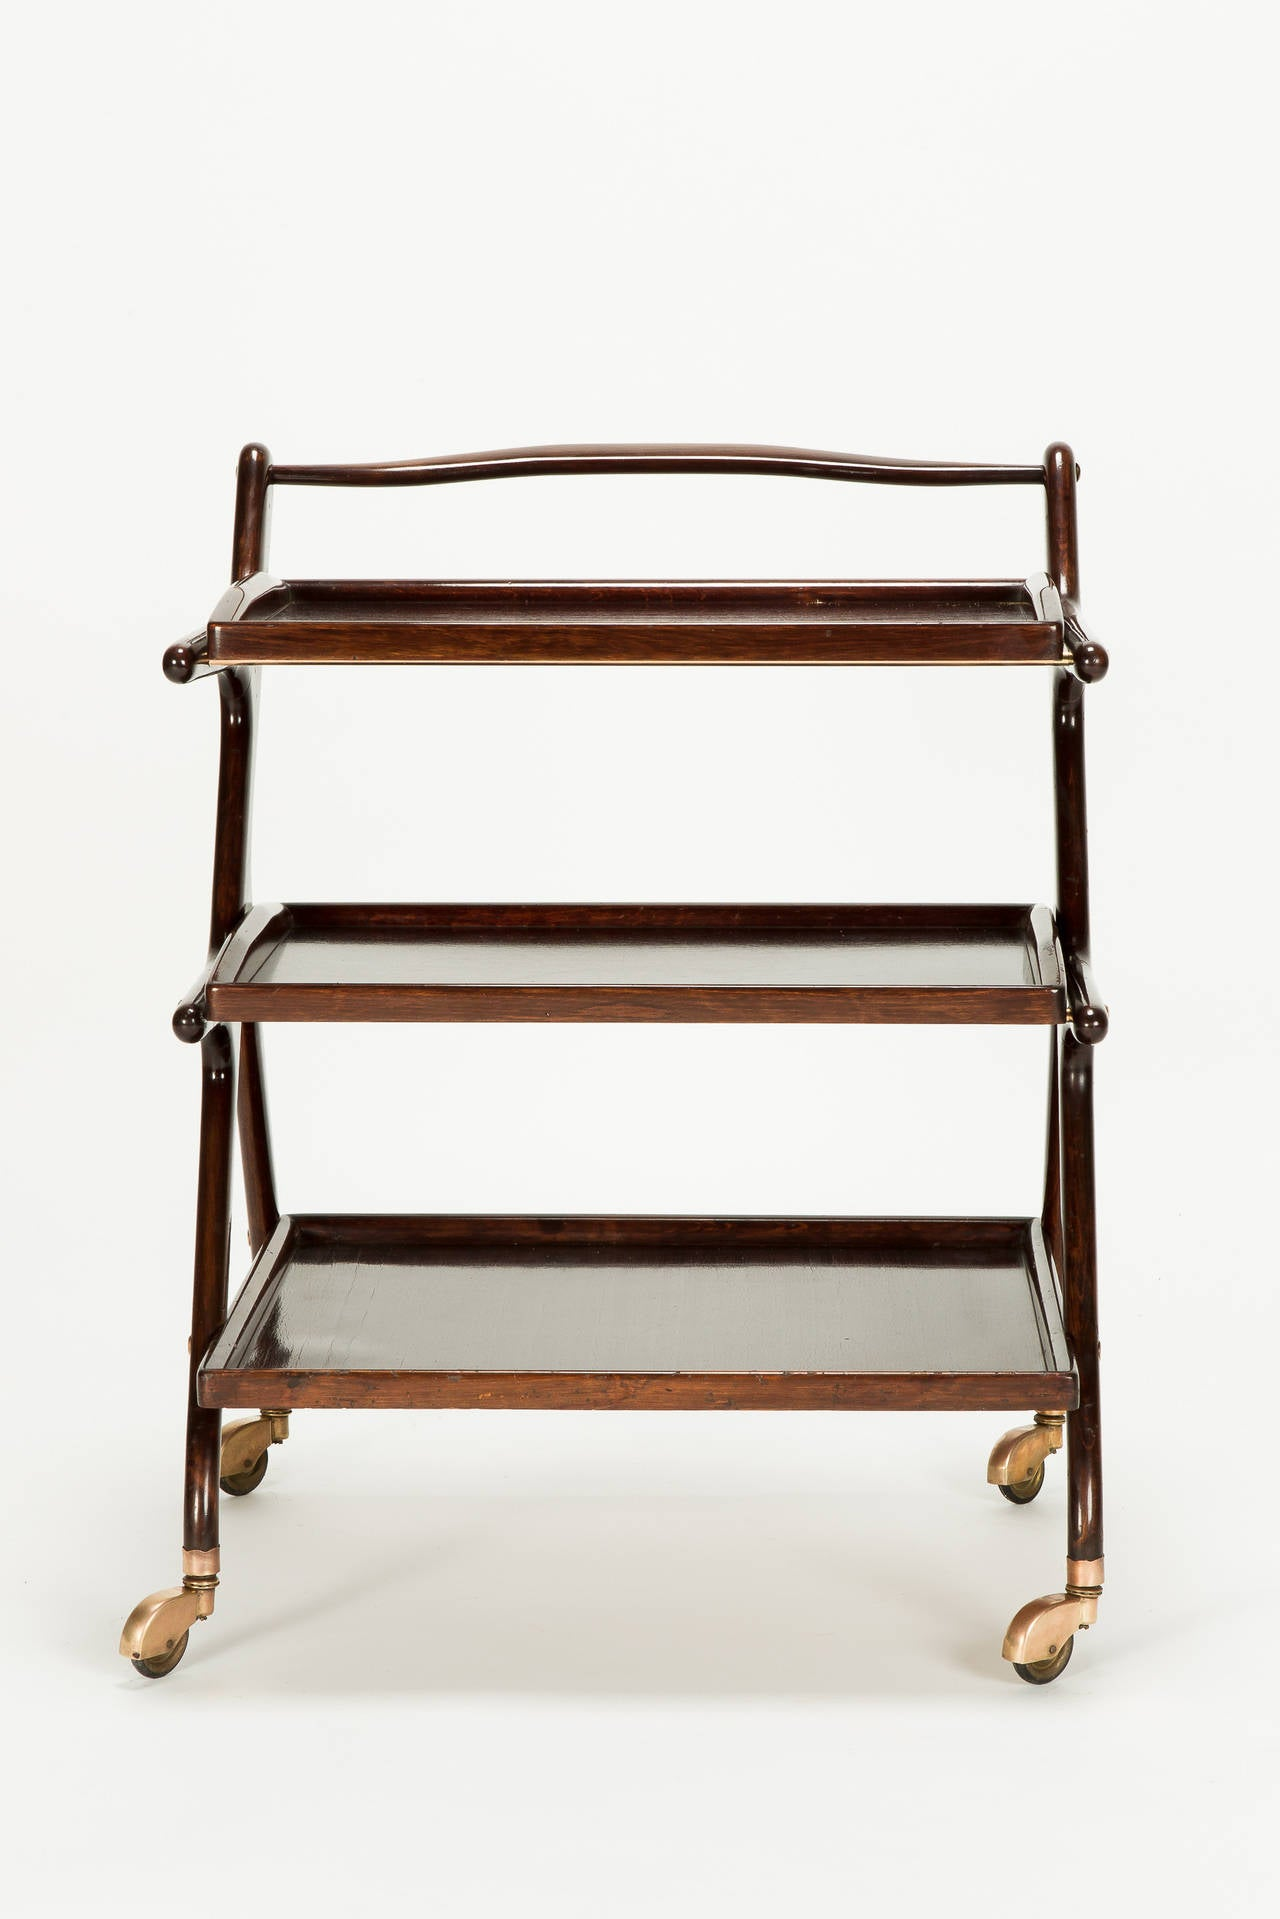 Italian mahogany serving trolley by Cesare Lacca, Italy, 1950s. Two removable trays, on brass wheels (slightly bronze colored), original finish.